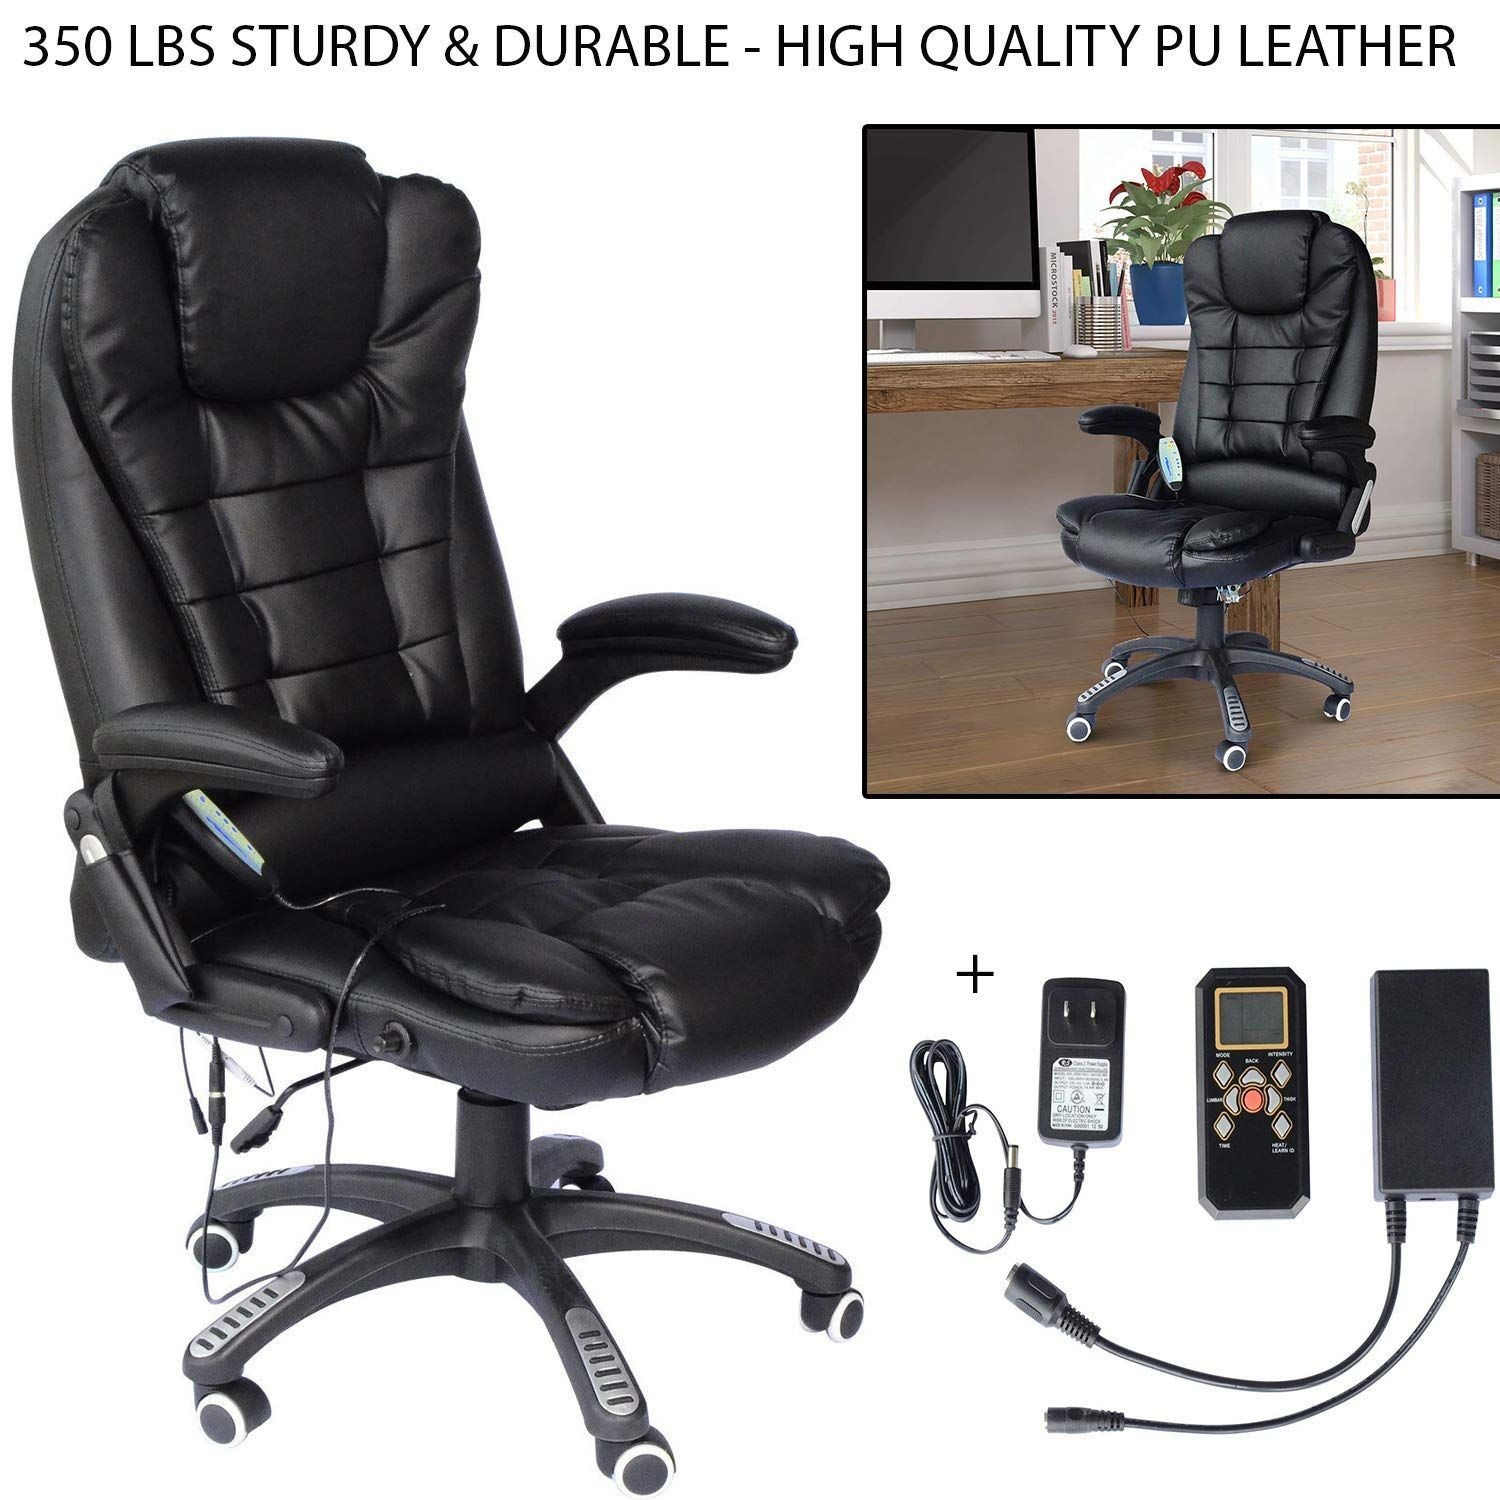 350 Lbs Sturdy Amp Durable Heated Vibrating Office Massage Chair